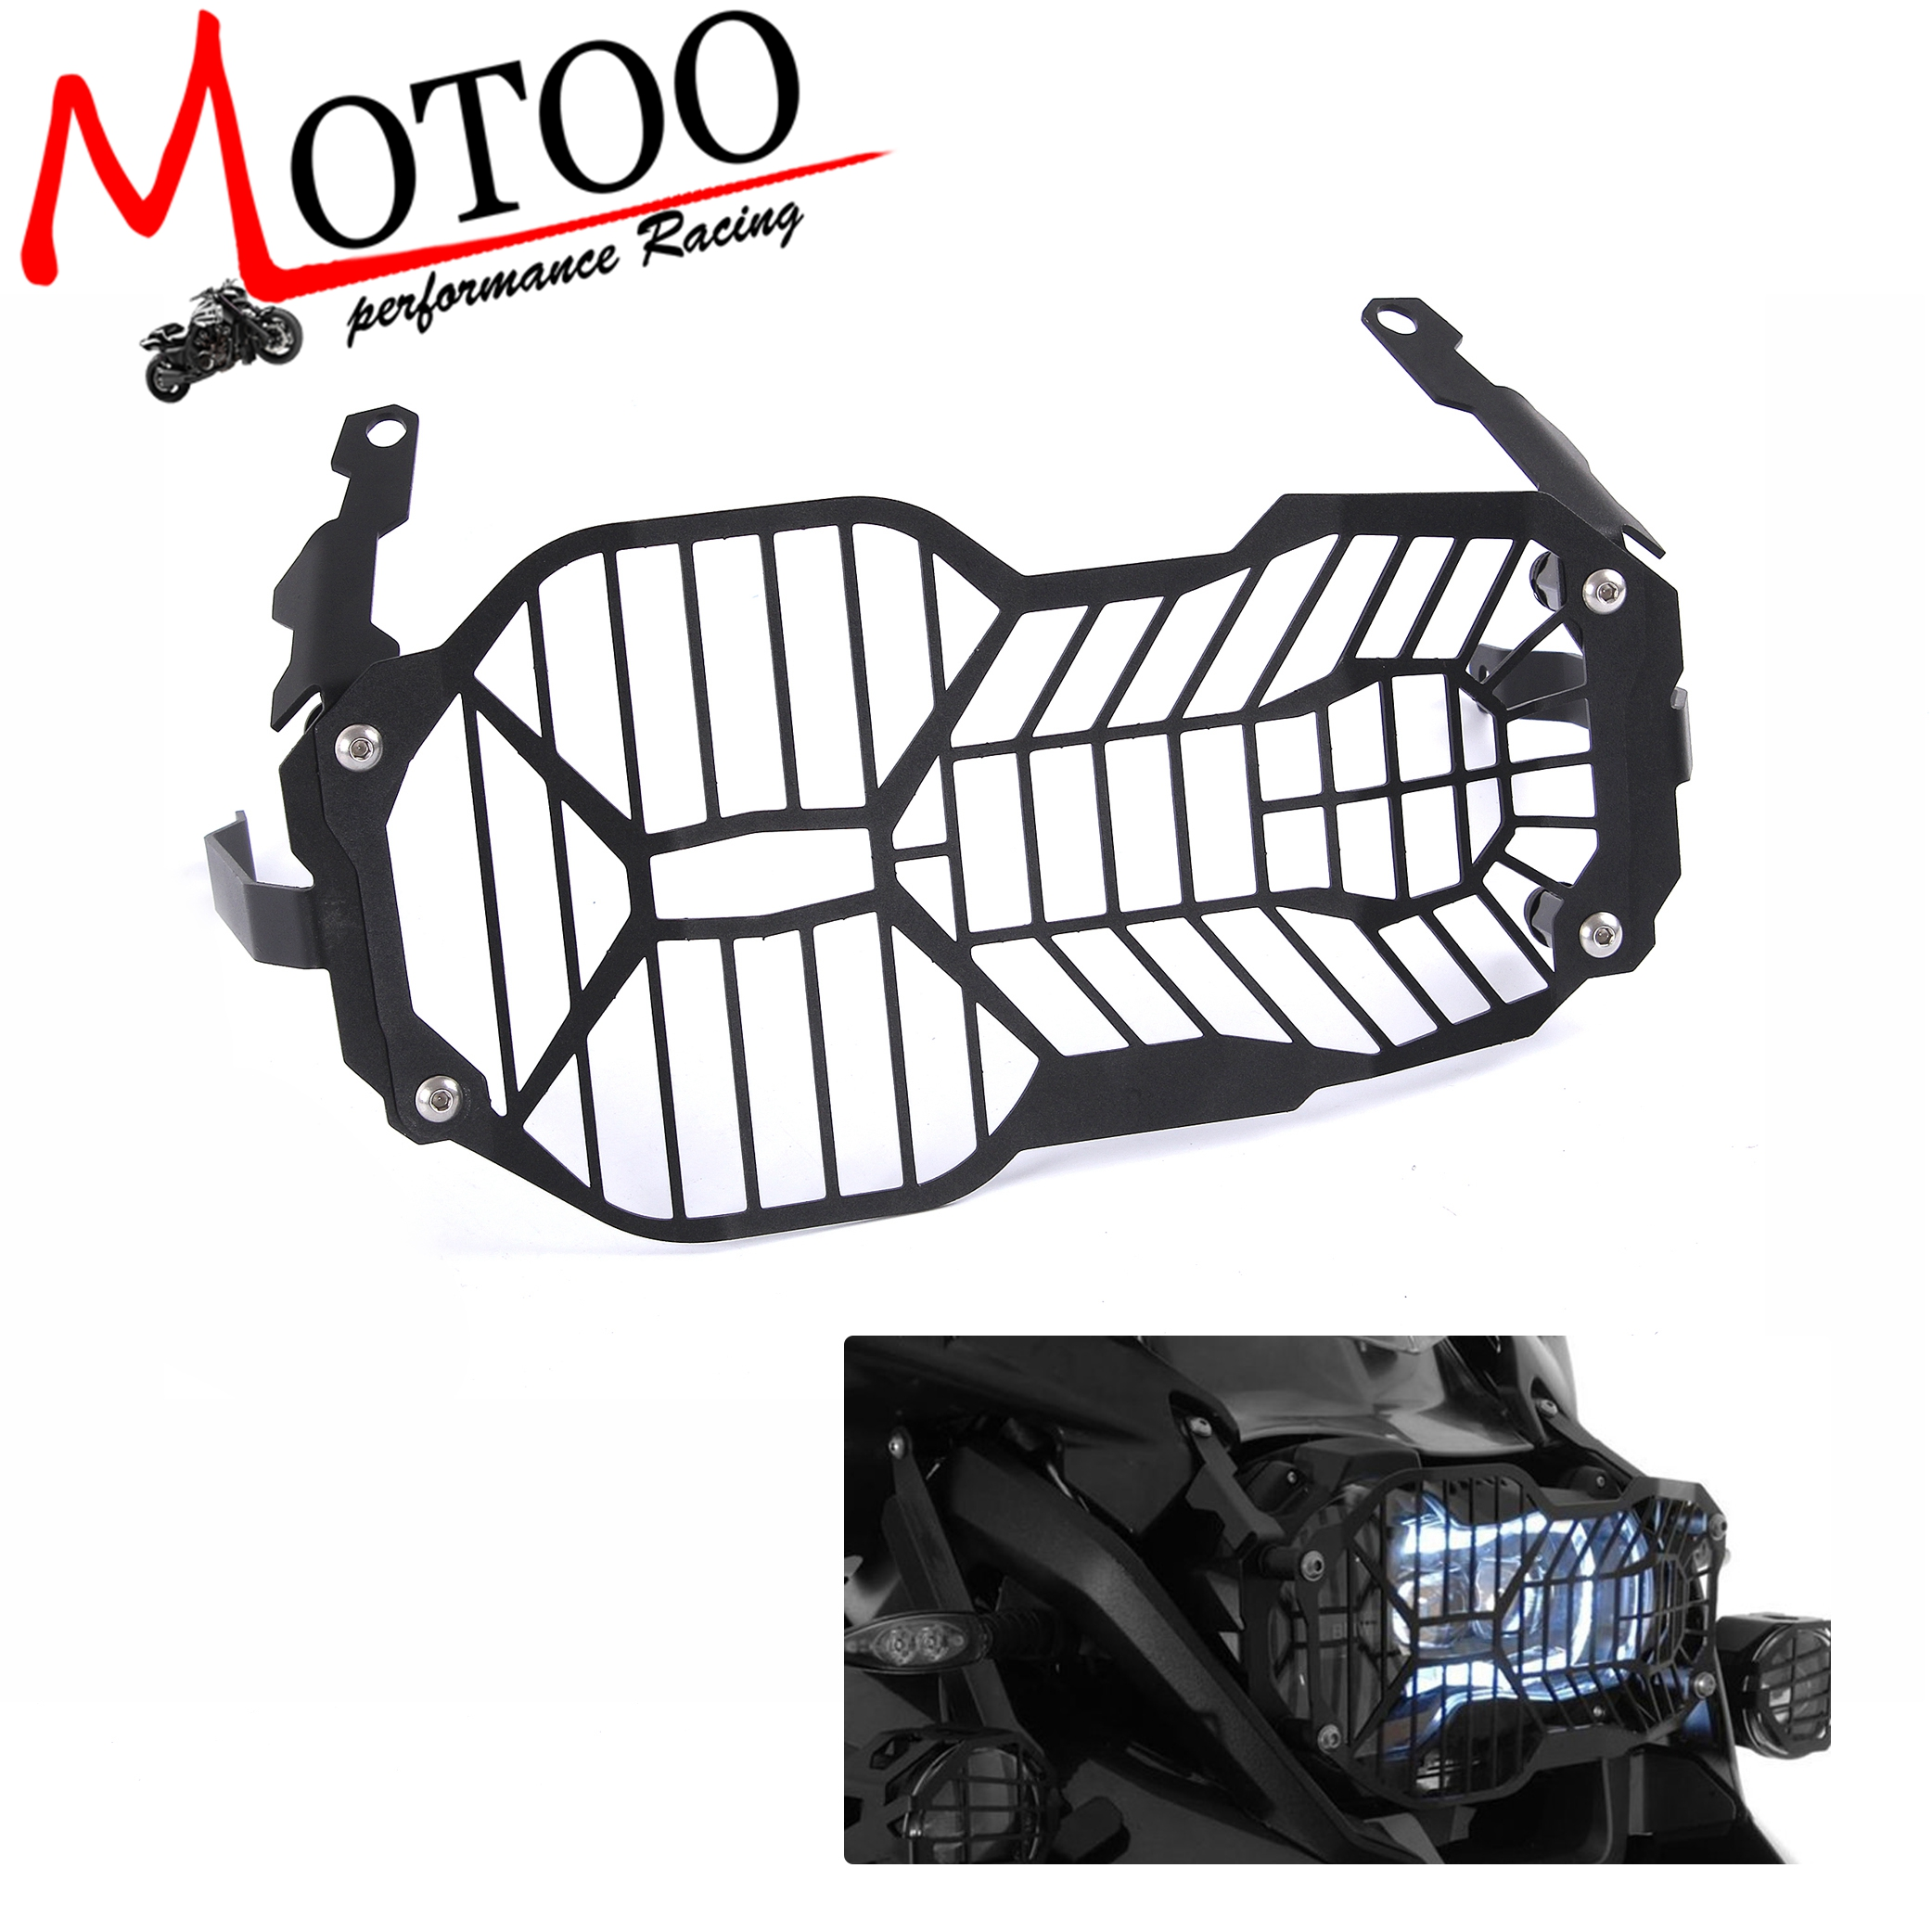 Motorcycle Front Headlight Grille Guard Cover Protector For GSA BMW R1200GS R1200GS R 1200 R1200 GS /LC /Adventure 2013 2018